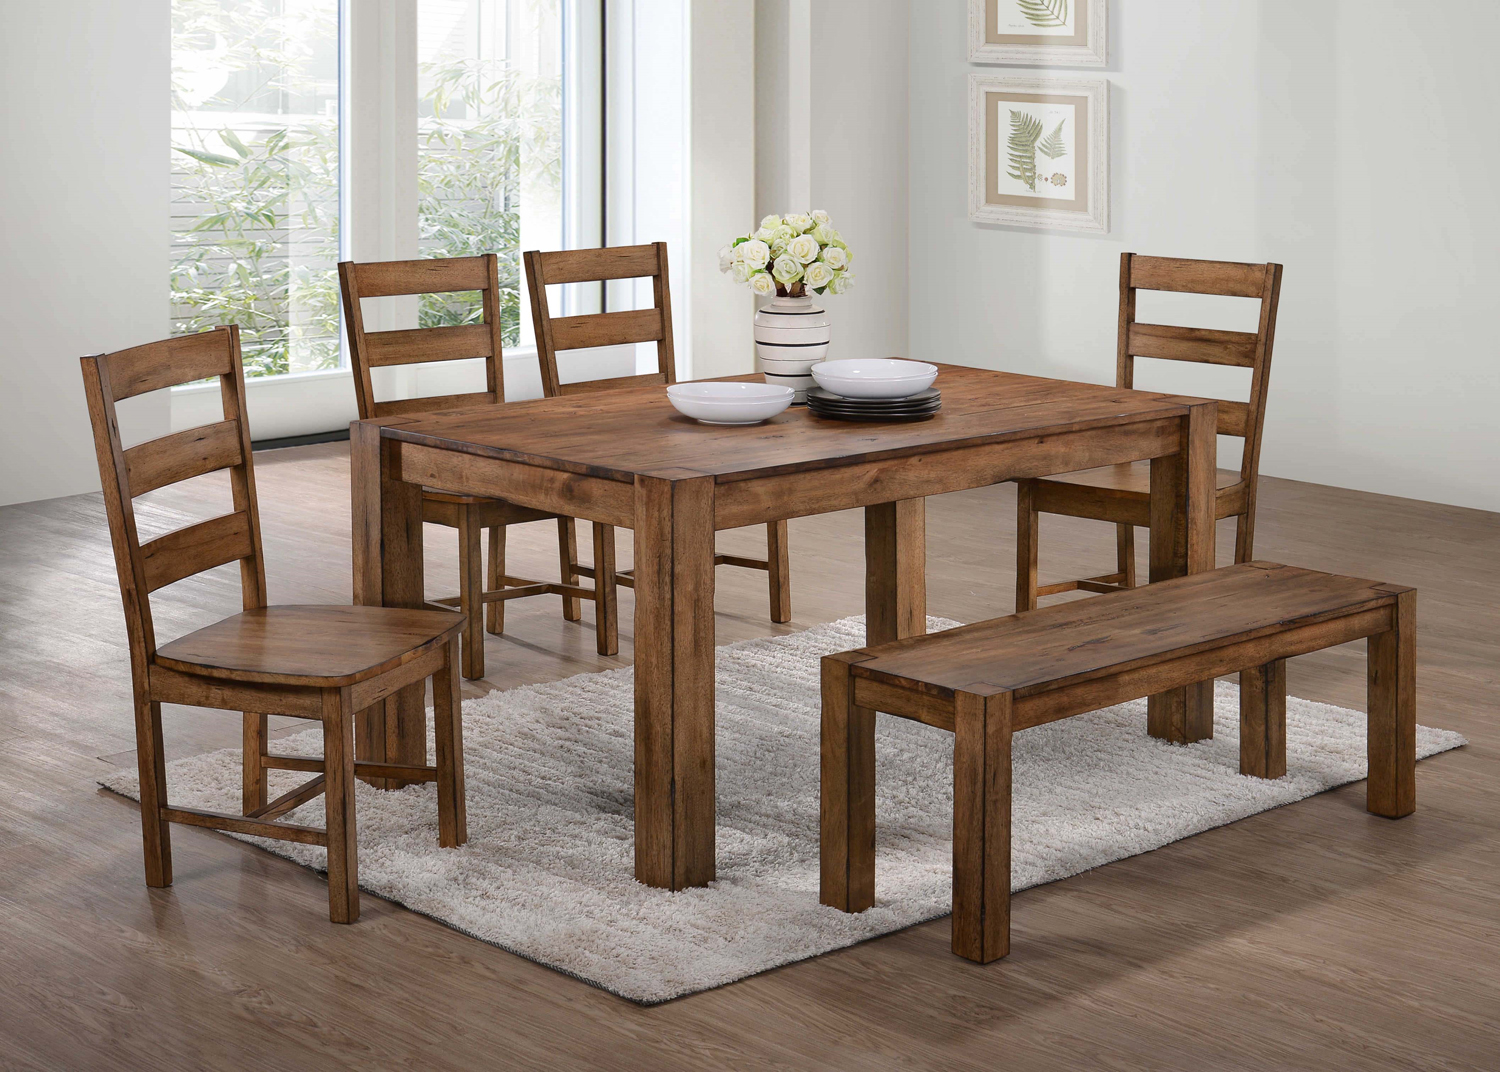 Kitchen Table Bench And 4 Chairs Nothin Fancy Furniture Warehouse